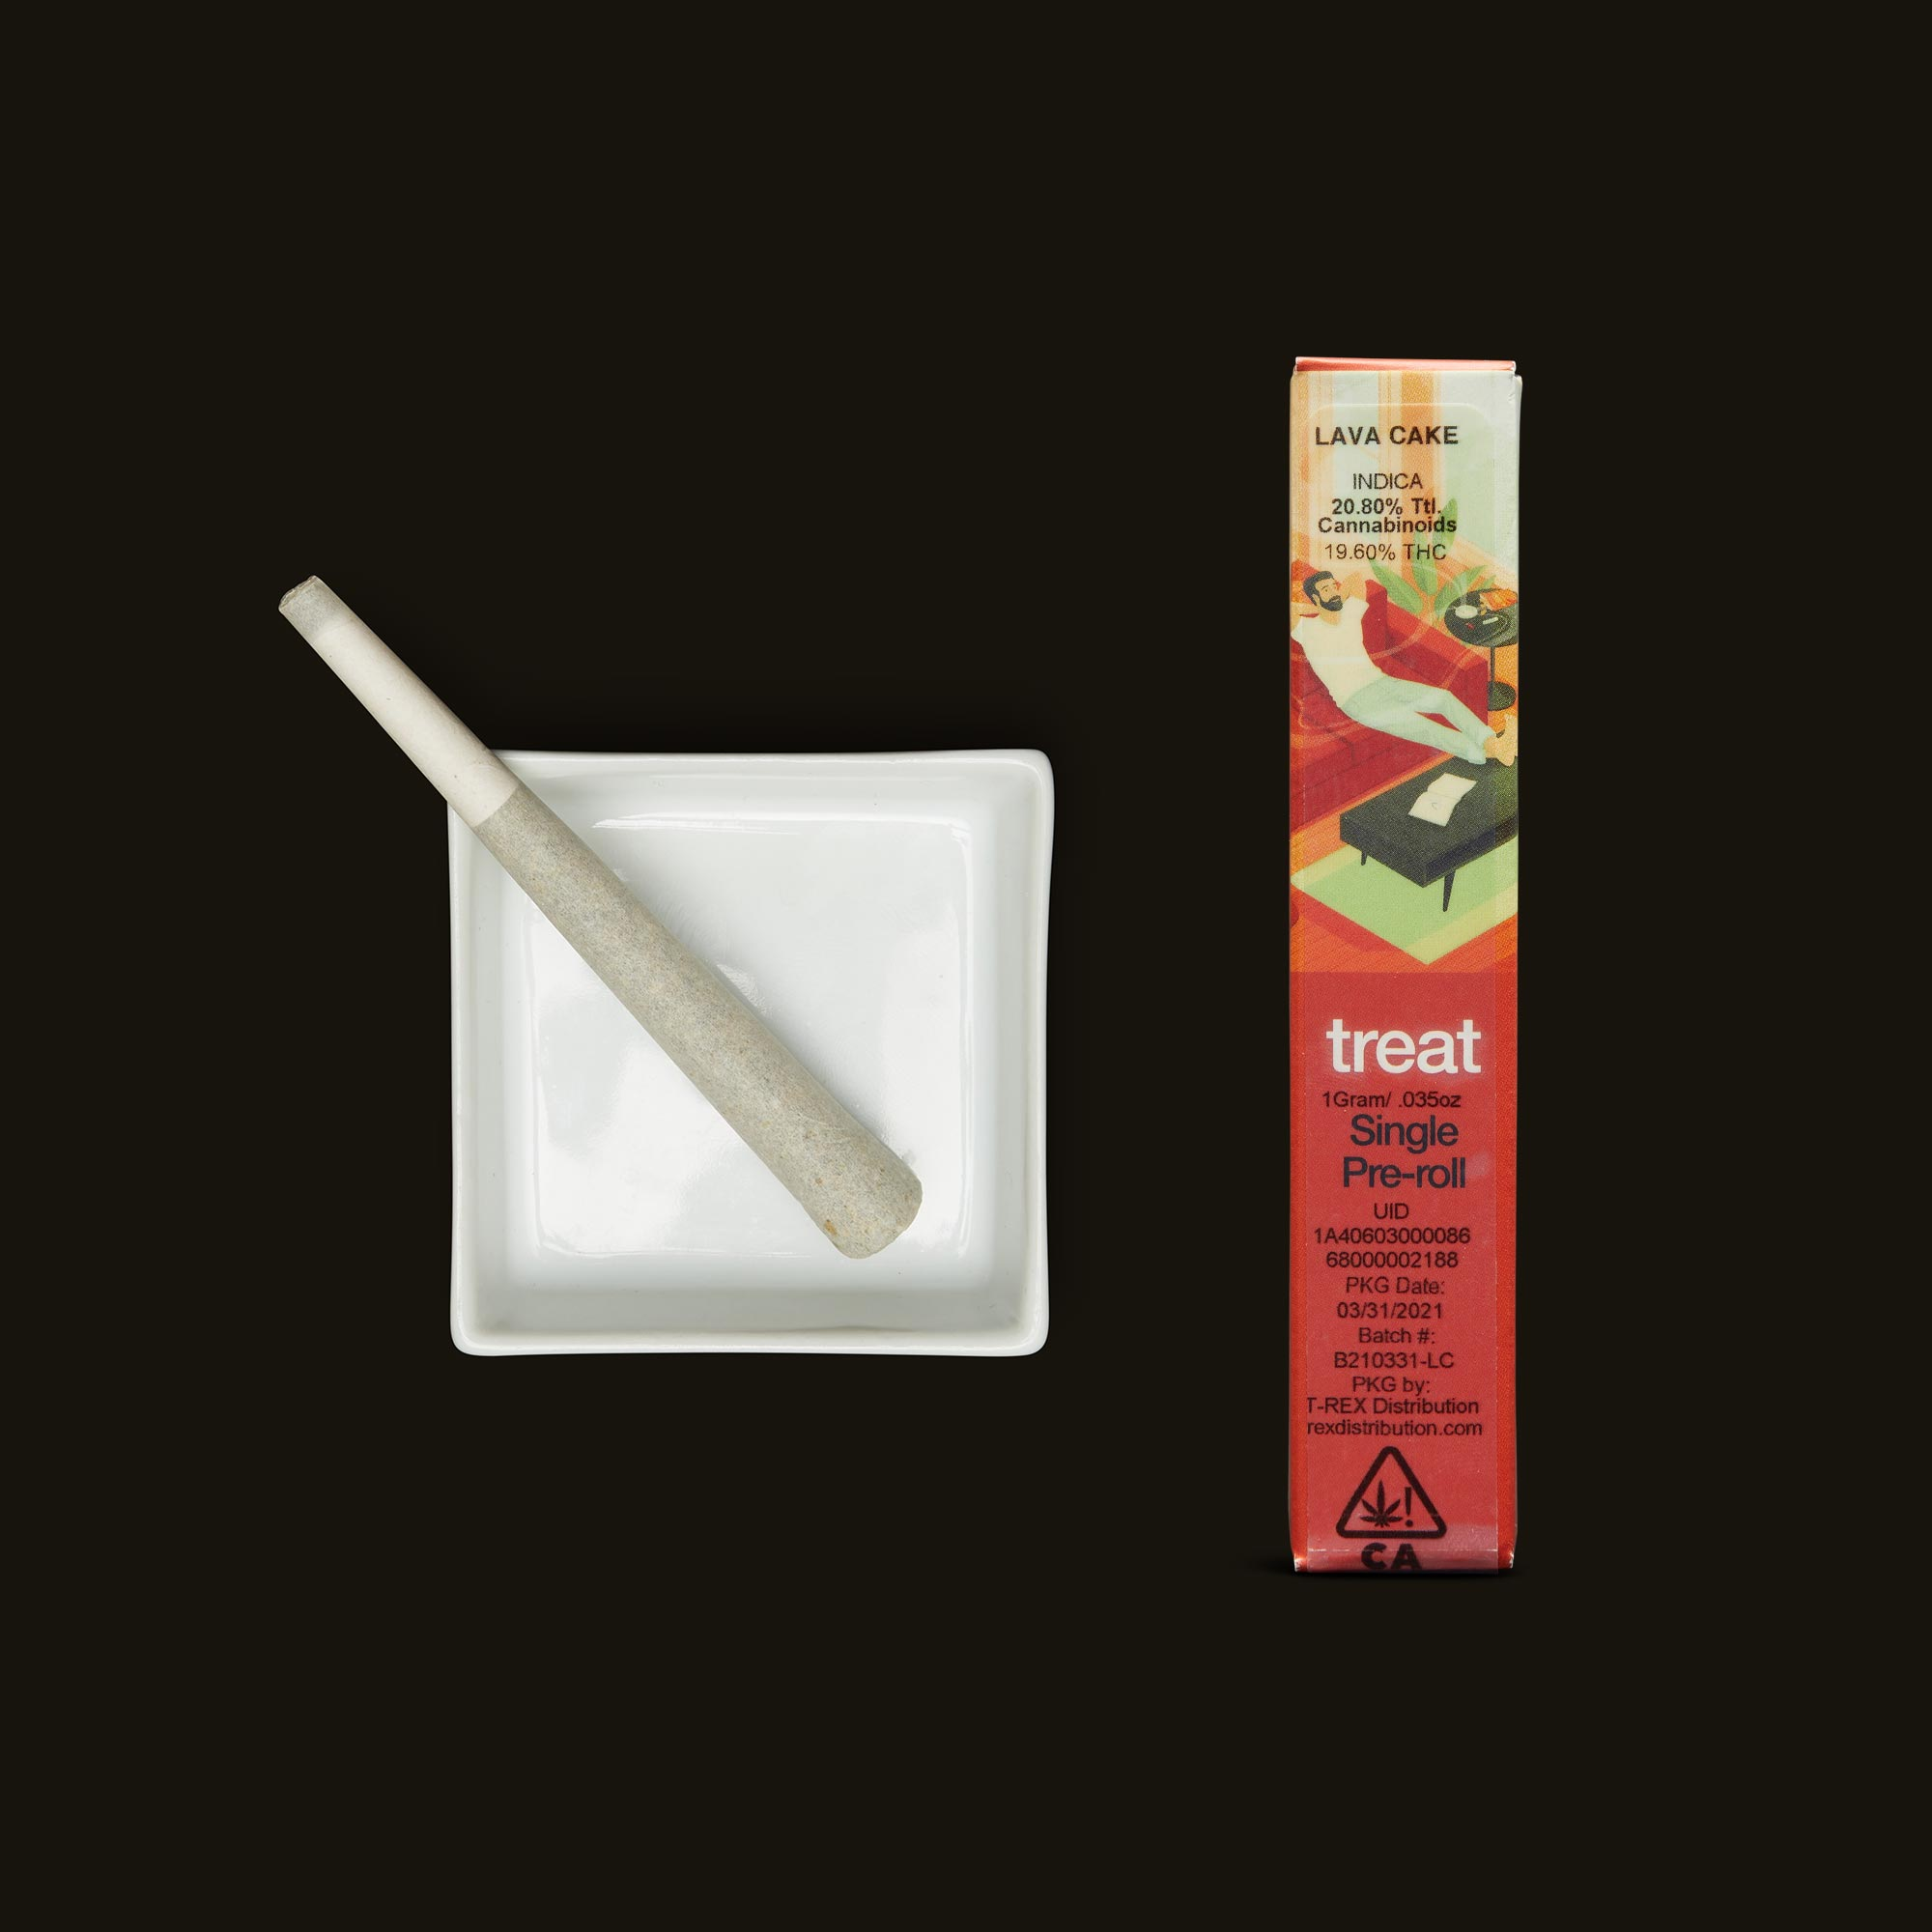 Lava Cake Pre-Roll by Bloom Brands